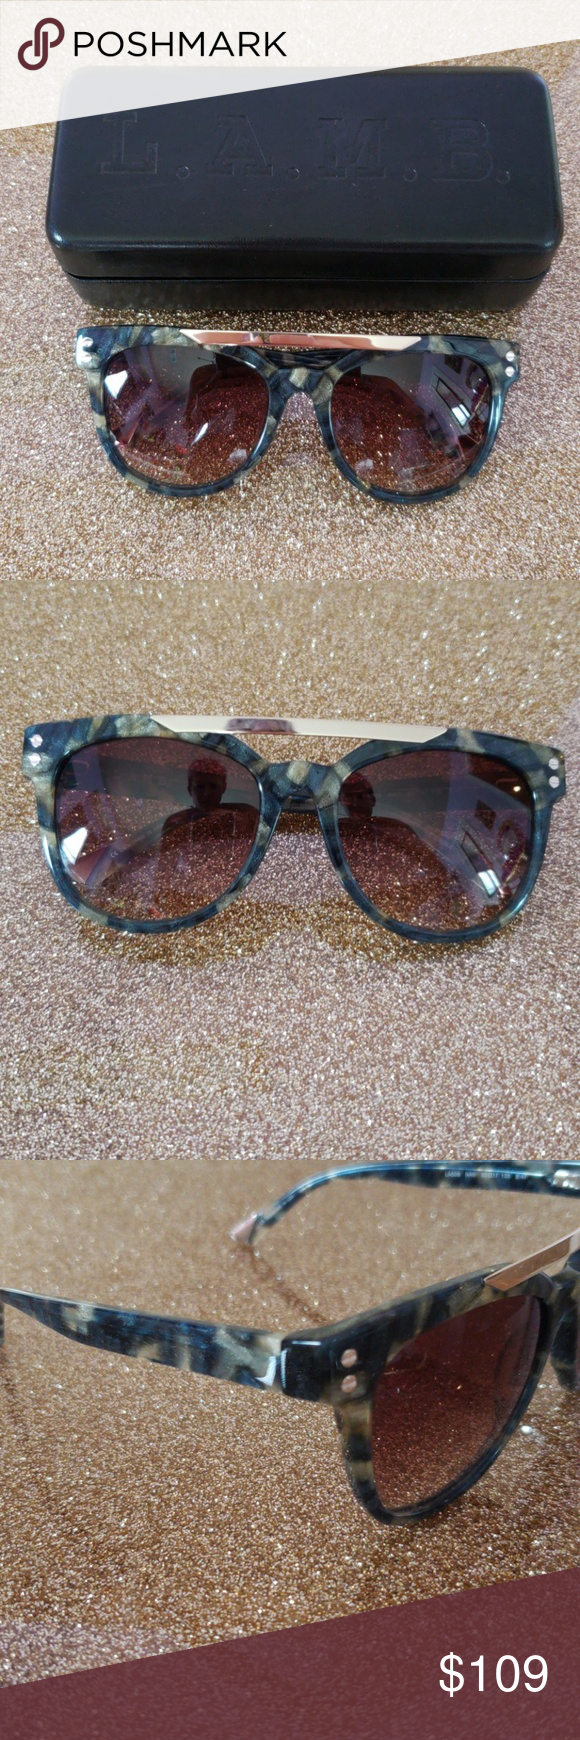 0ea67e31bc7 These sunglasses are brand new with matching bag and case. L.A.M.B.  Accessories Sunglasses